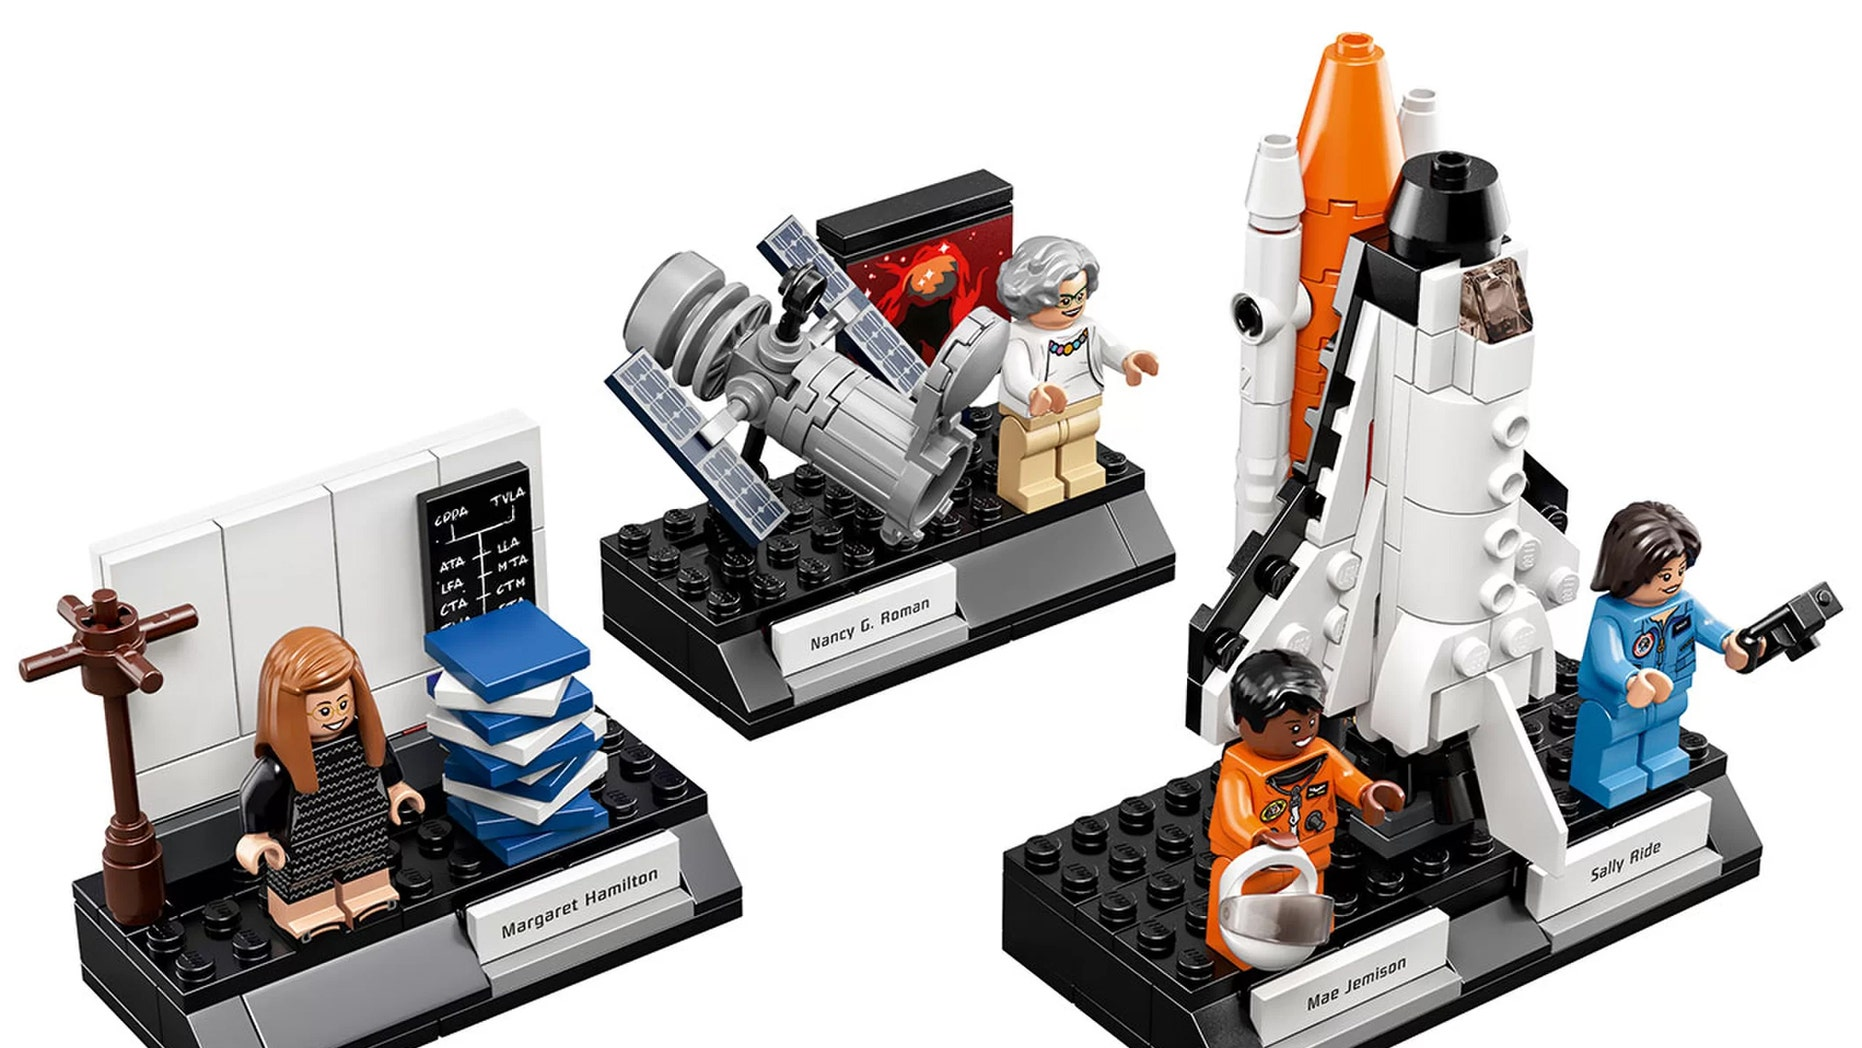 """The Lego Ideas """"Women of NASA"""" set includes minifigures modeled after astronomer Nancy Grace Roman, computer scientist Margaret Hamilton and astronauts Sally Ride and Mae Jemison. Credit: Lego"""